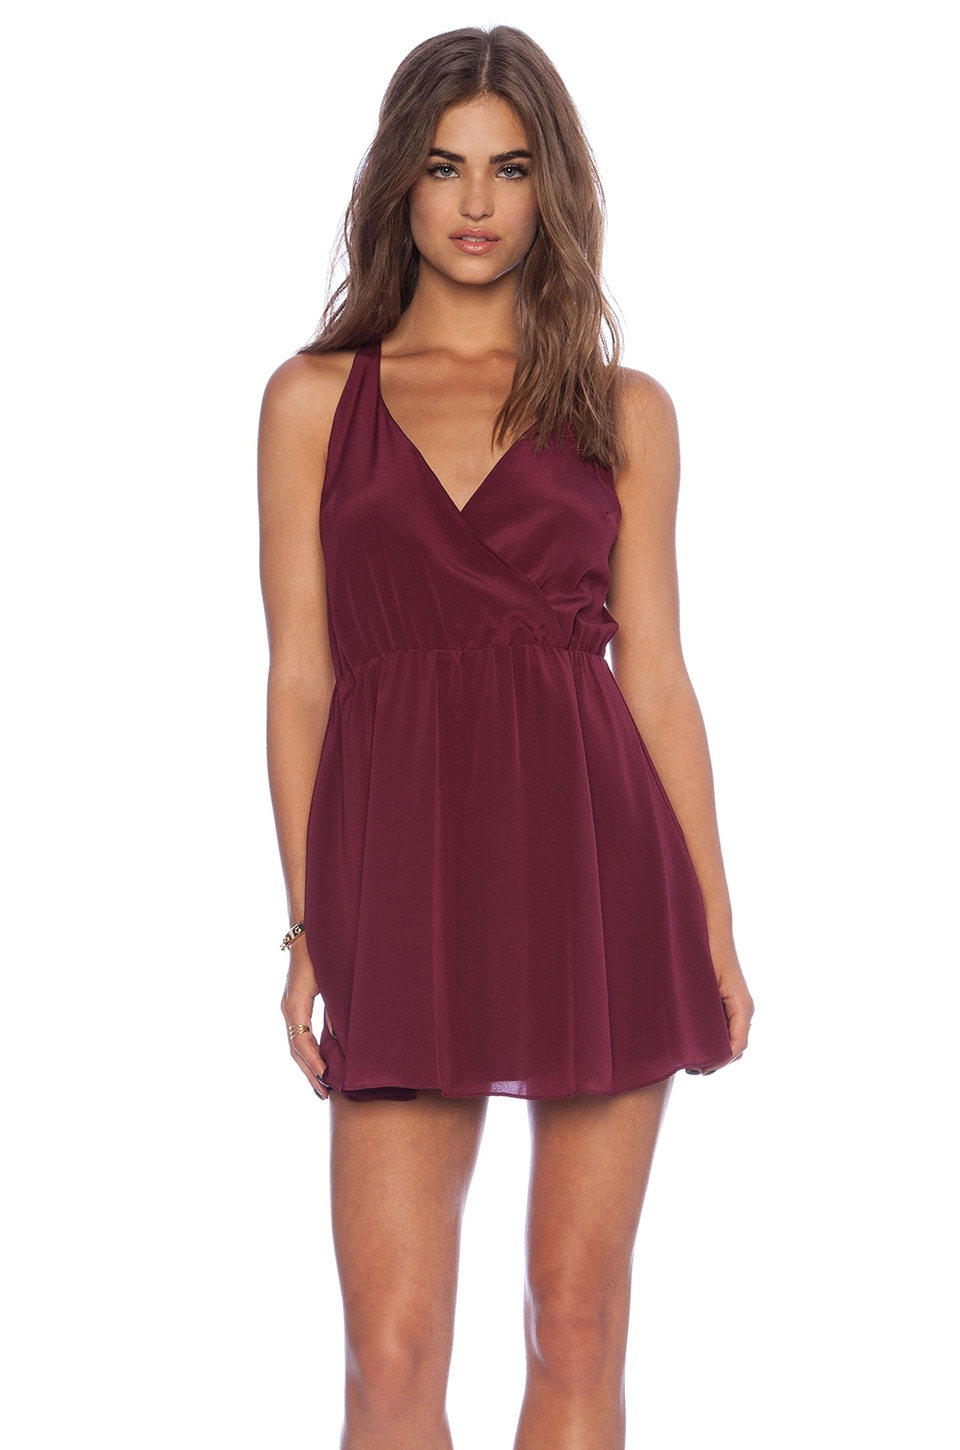 Cheap myne dresses